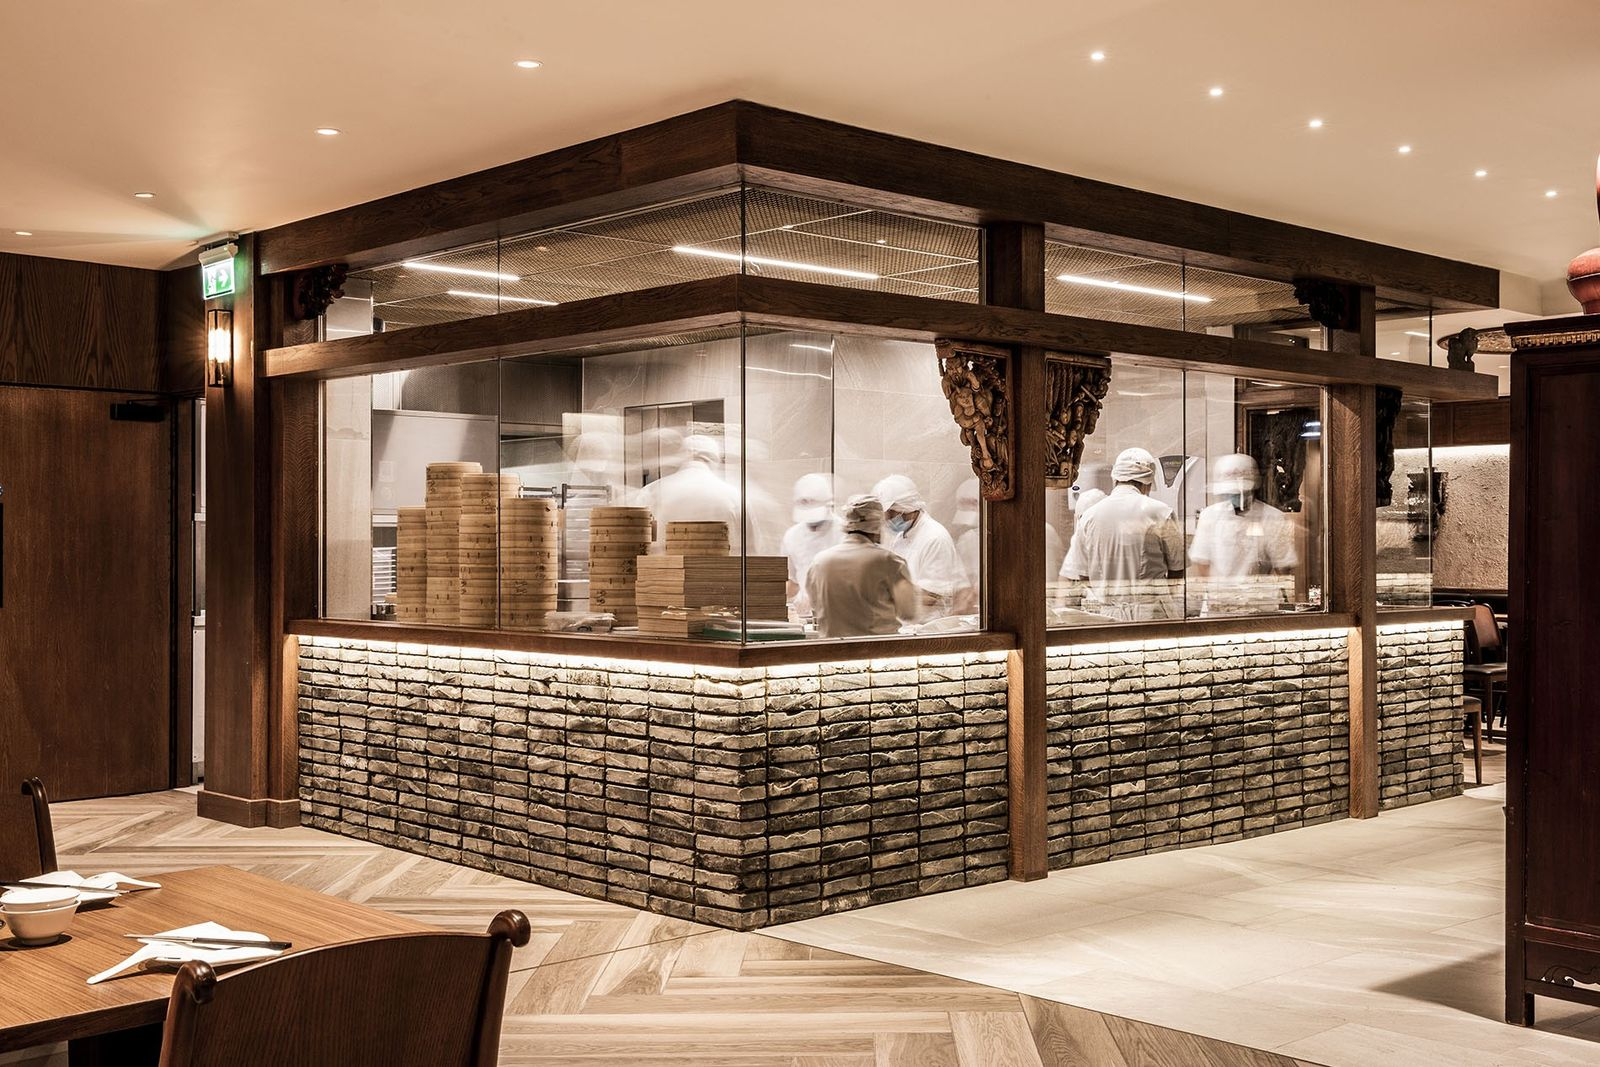 Tried & Tested: Din Tai Fung, London